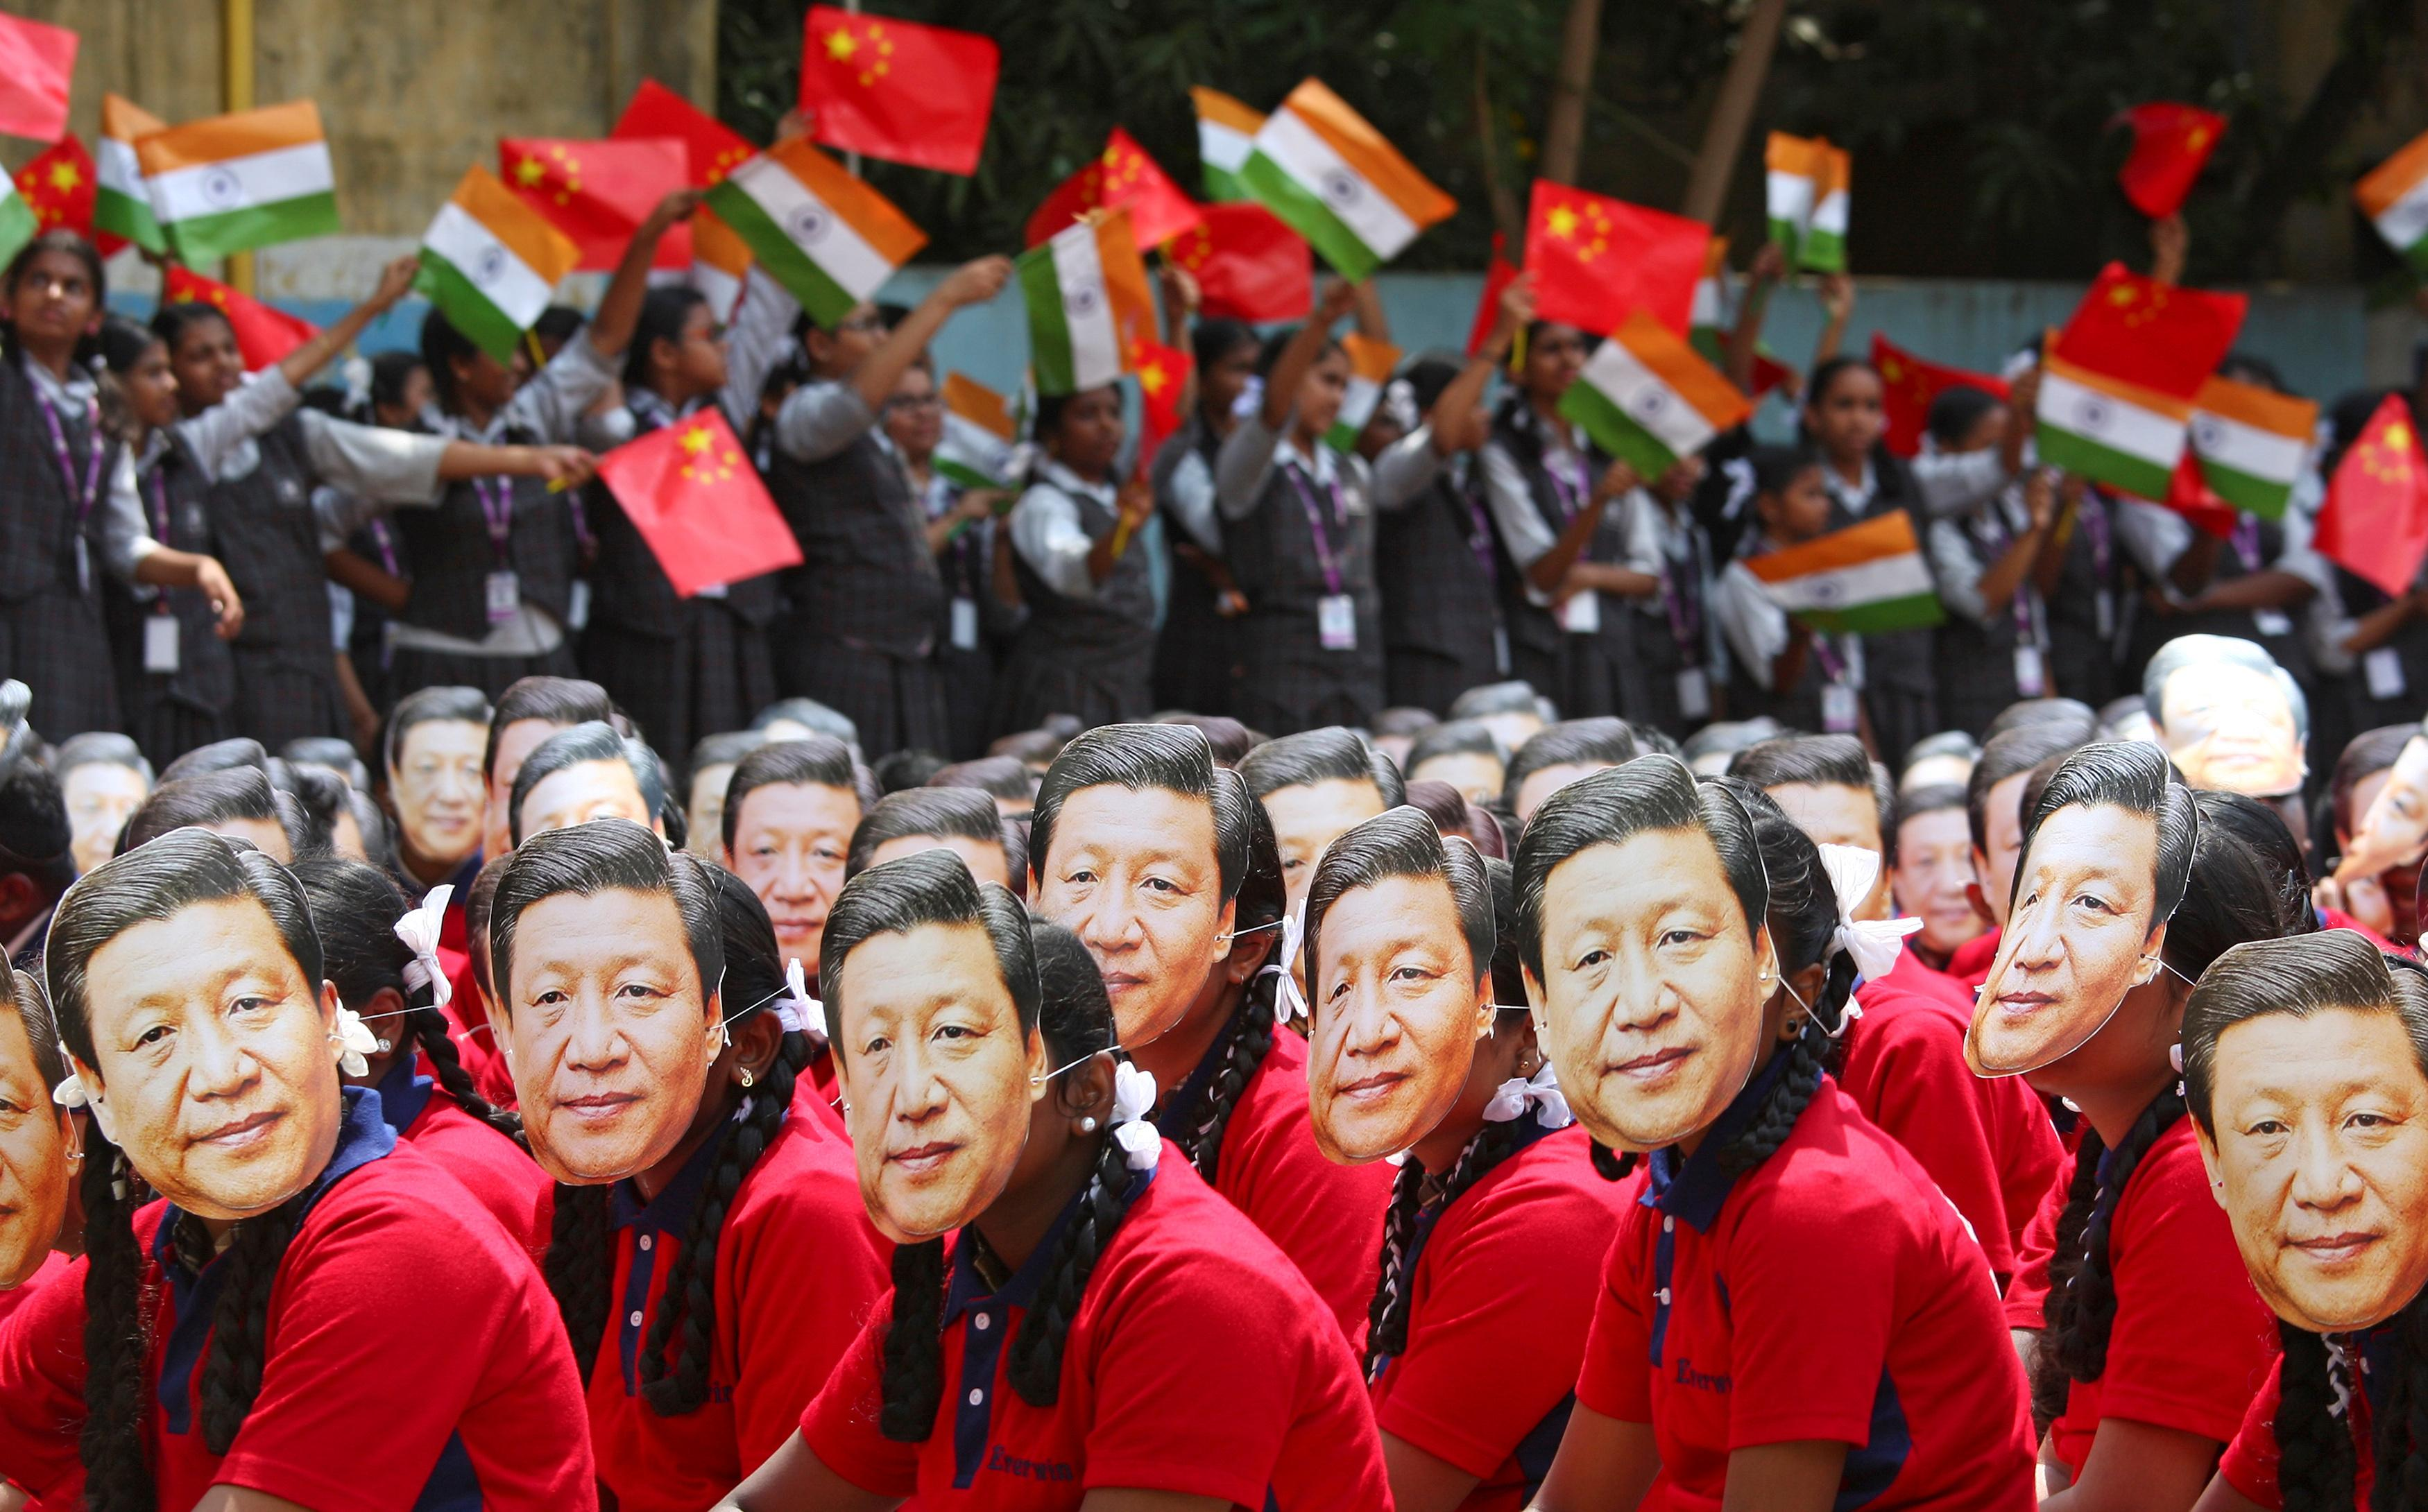 Modi and China's Xi eye new border security steps in summit talks